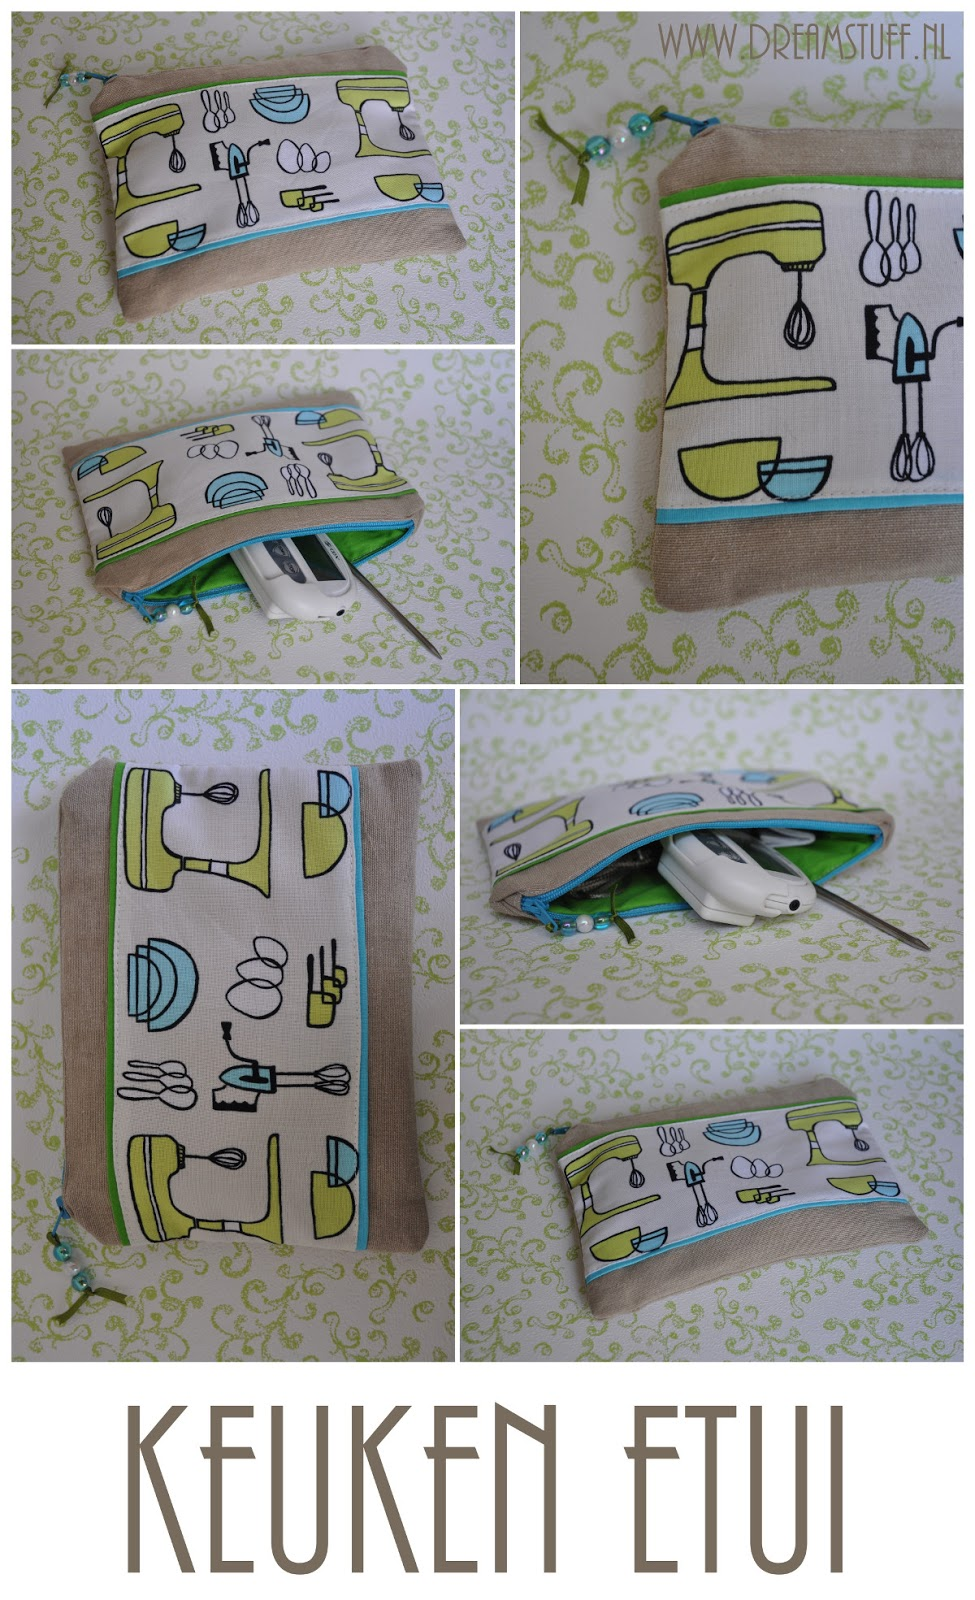 Keuken etui – Kitchen fabric case